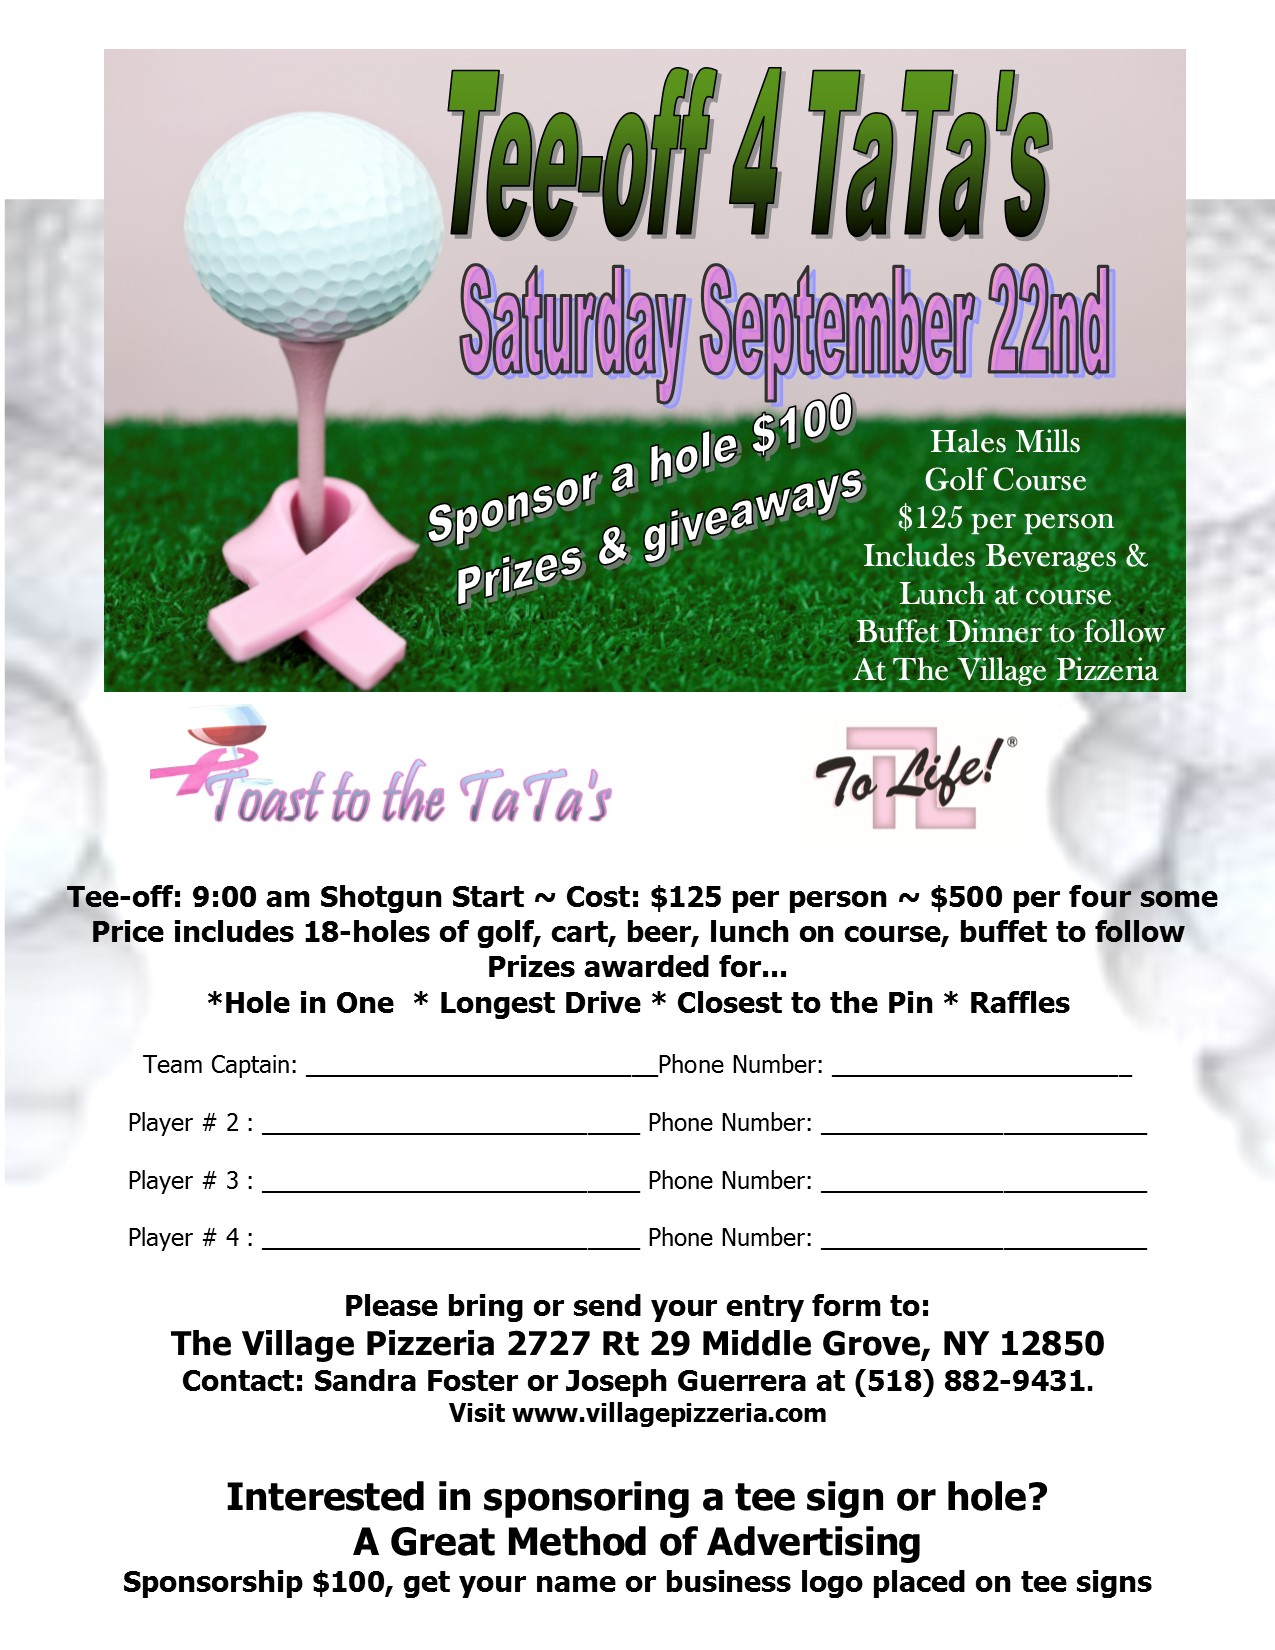 Tee-Off 4 Tata's Entry Form. Please Bring or senf your entry to The Village Pizzaeria. Contact Sandra Foster or Jospeh Guerrera at 518-882-9431